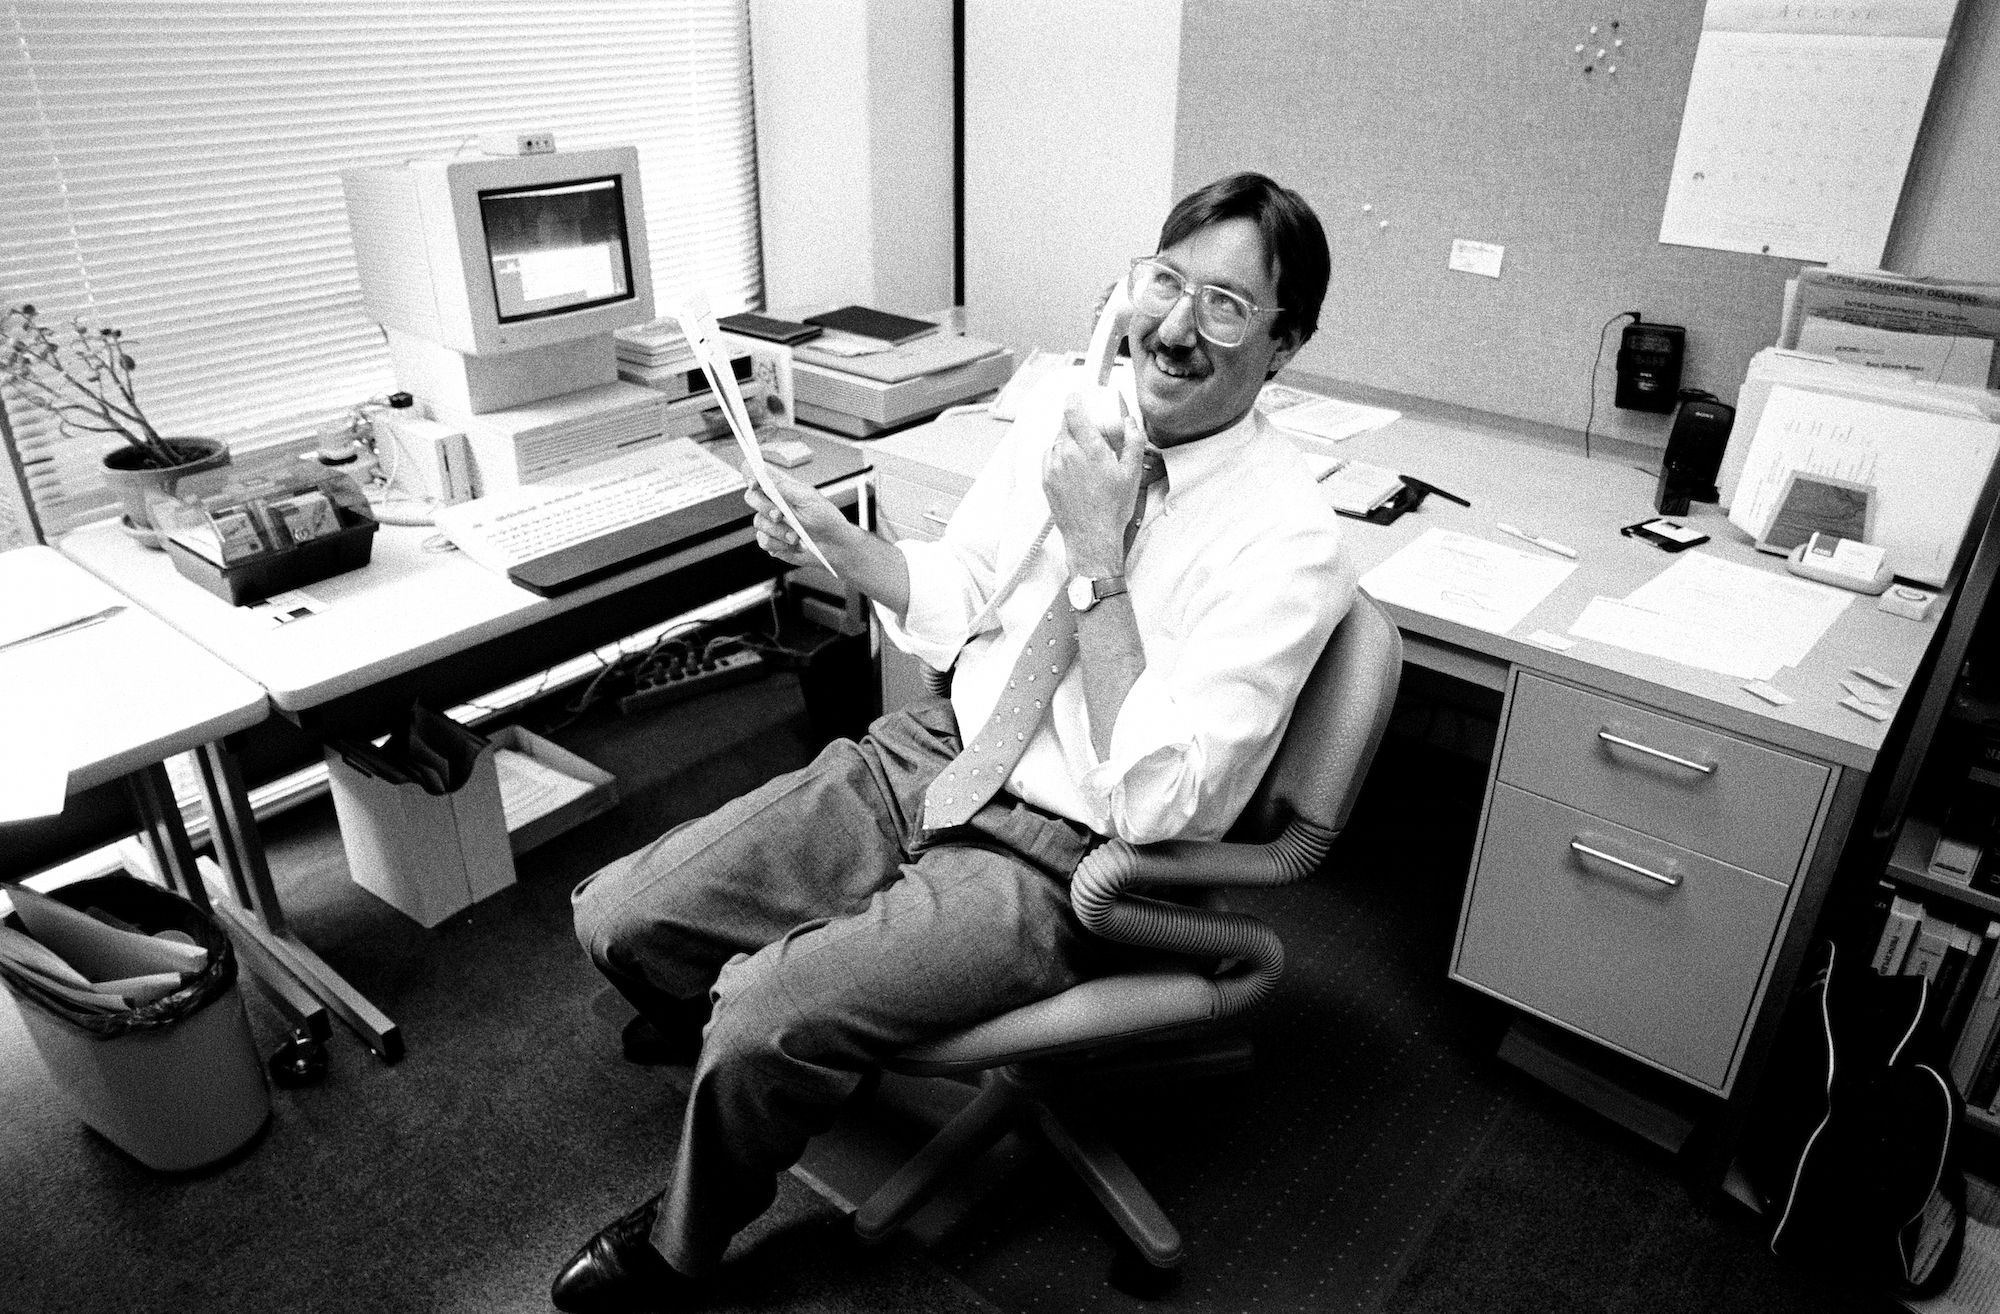 Steven Guttman, Adobe's product marketing manager for Photoshop, August 1991